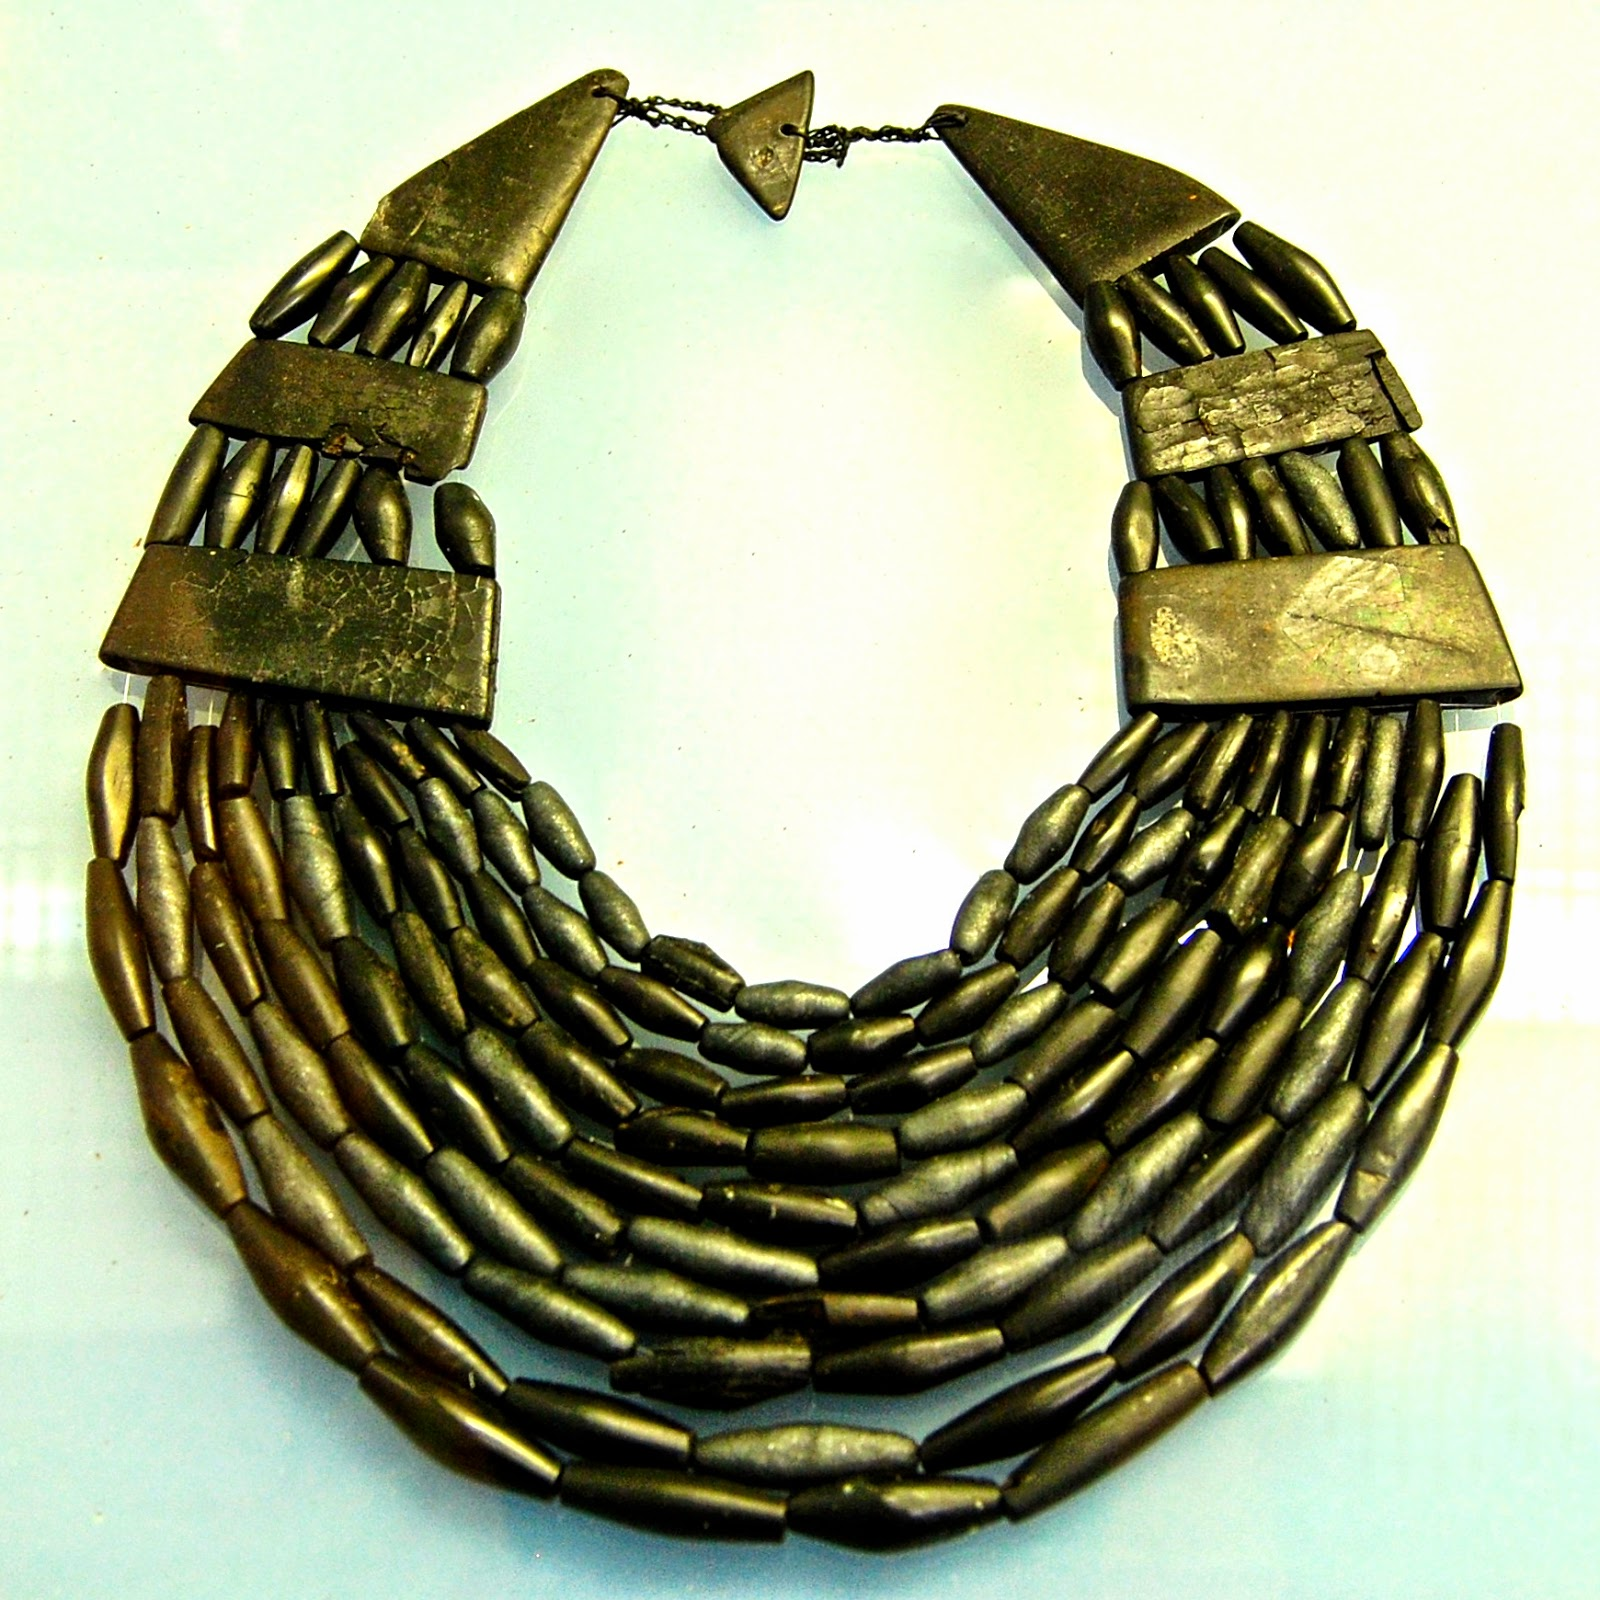 Queen of the Inch necklace in Bute Museum